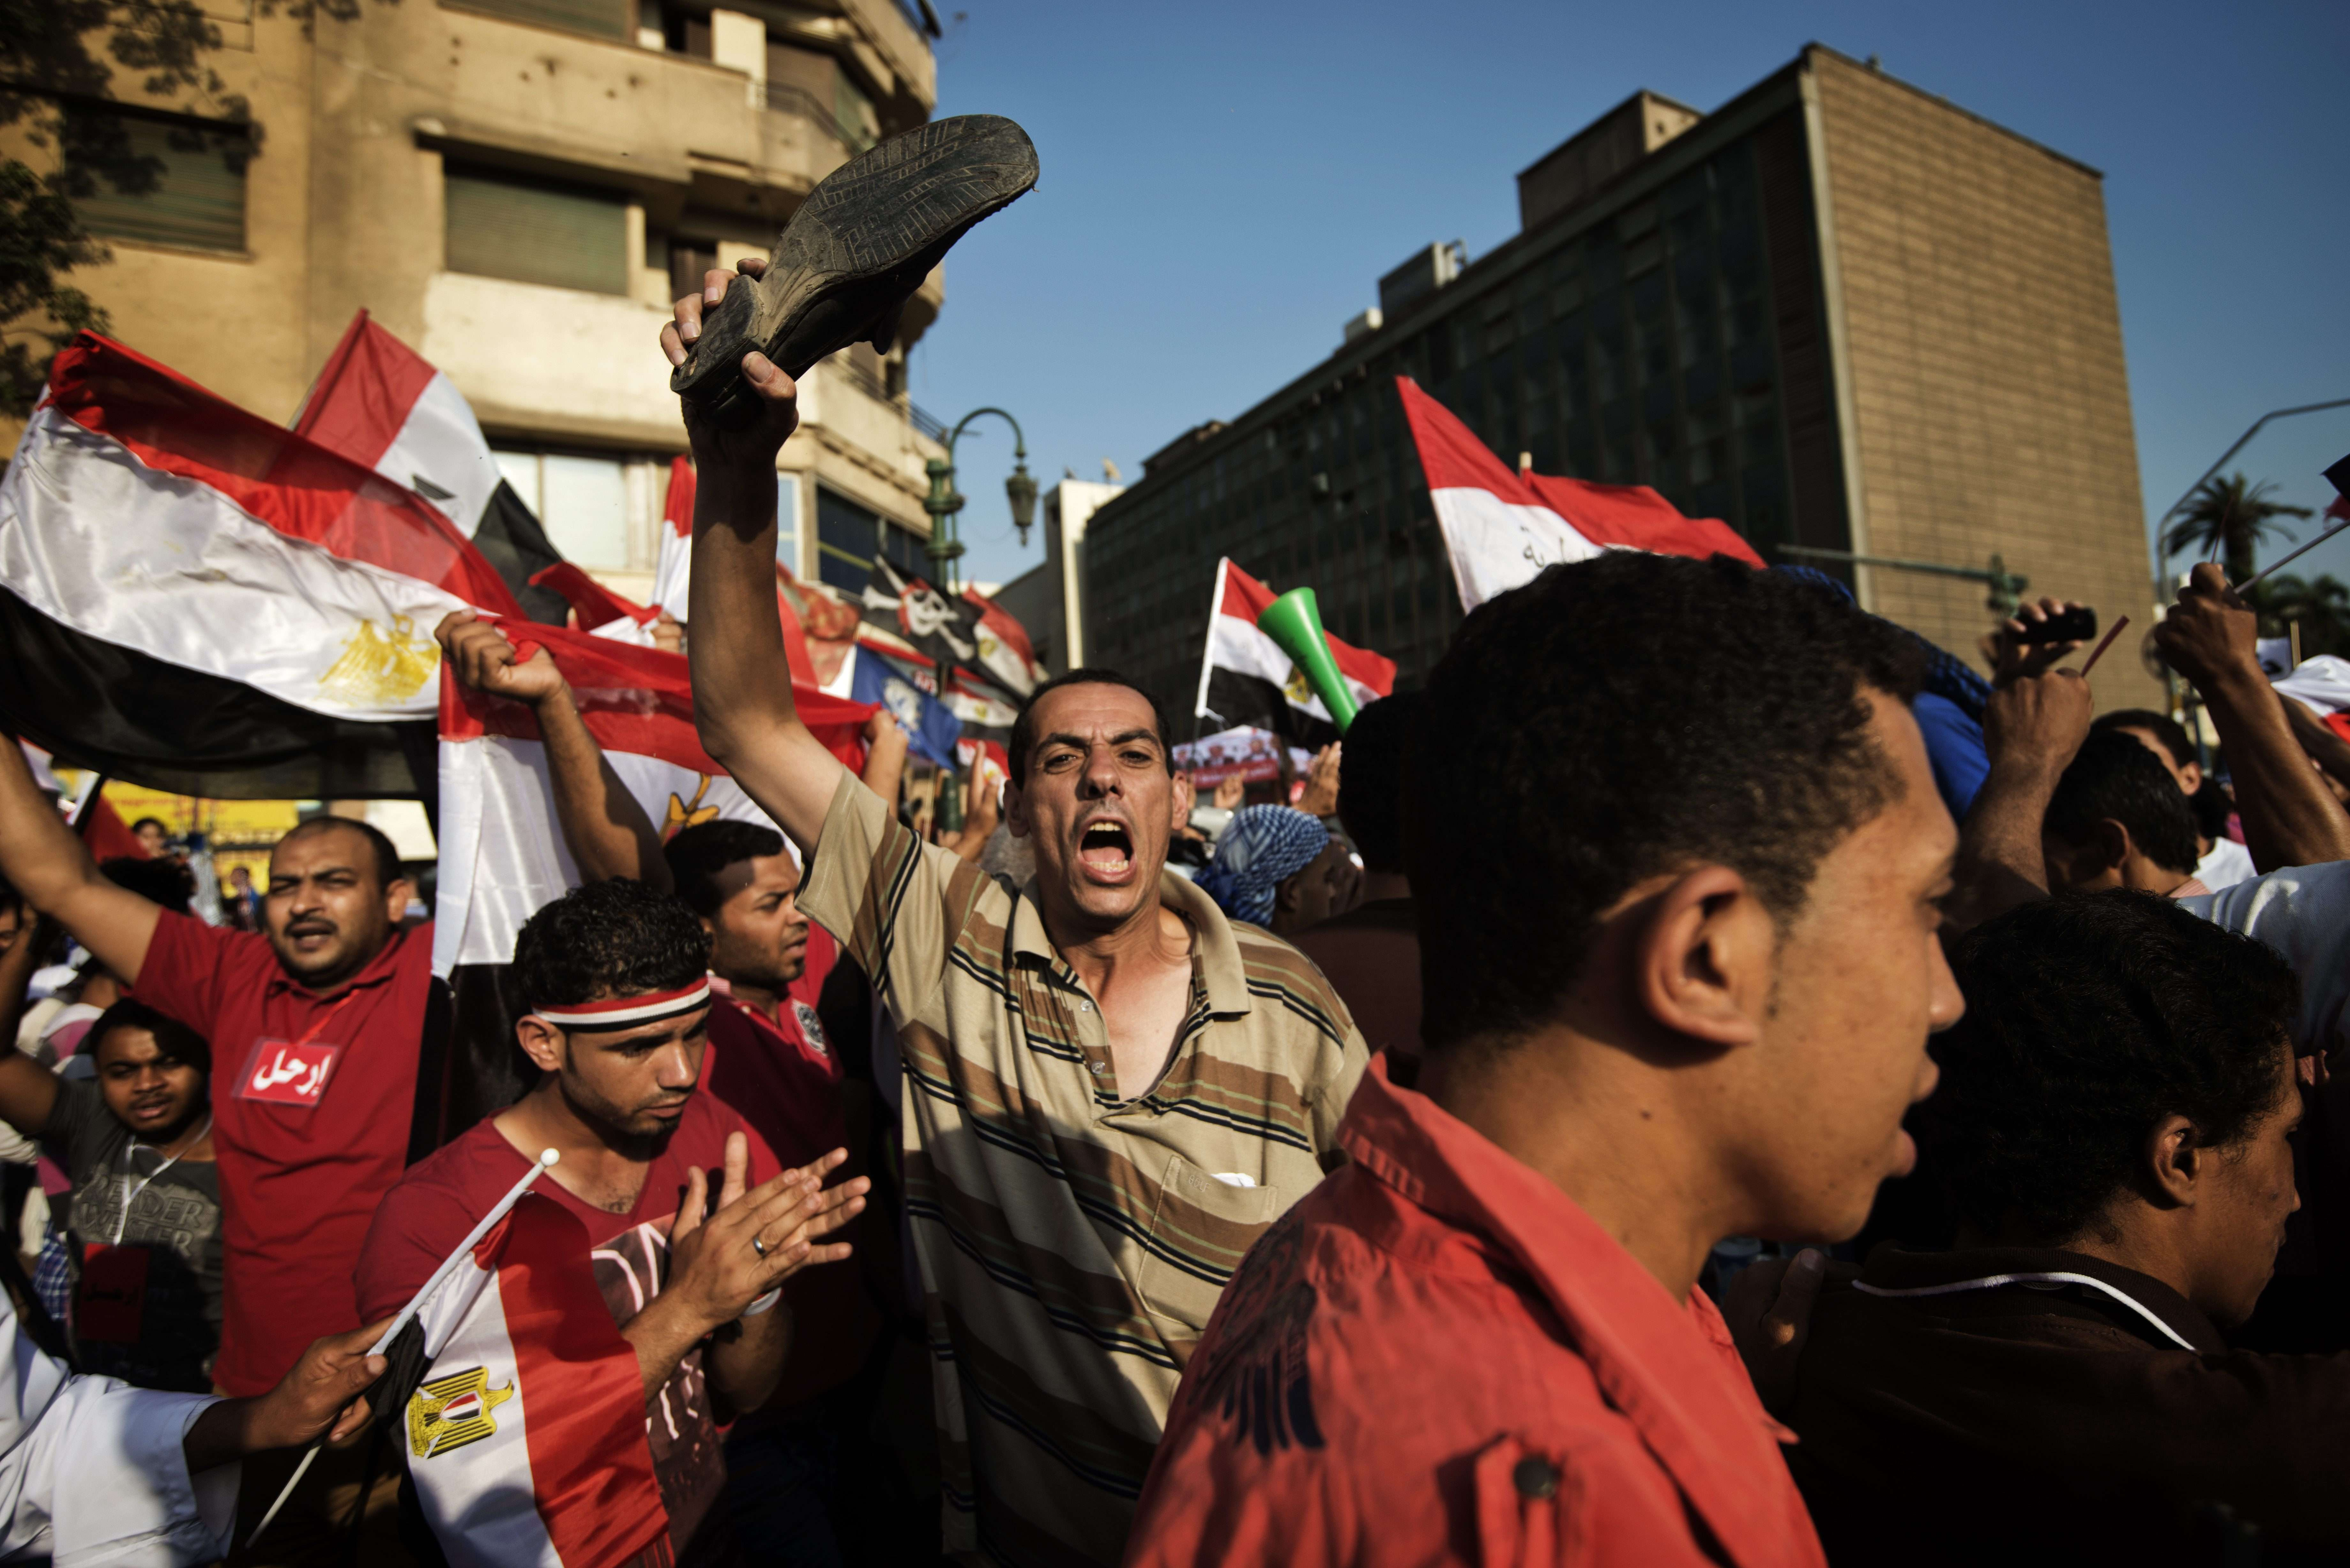 Egyptian opposition protesters celebrate on July 1, 2013 in Cairo's landmark Tahrir square (AFP Photo)